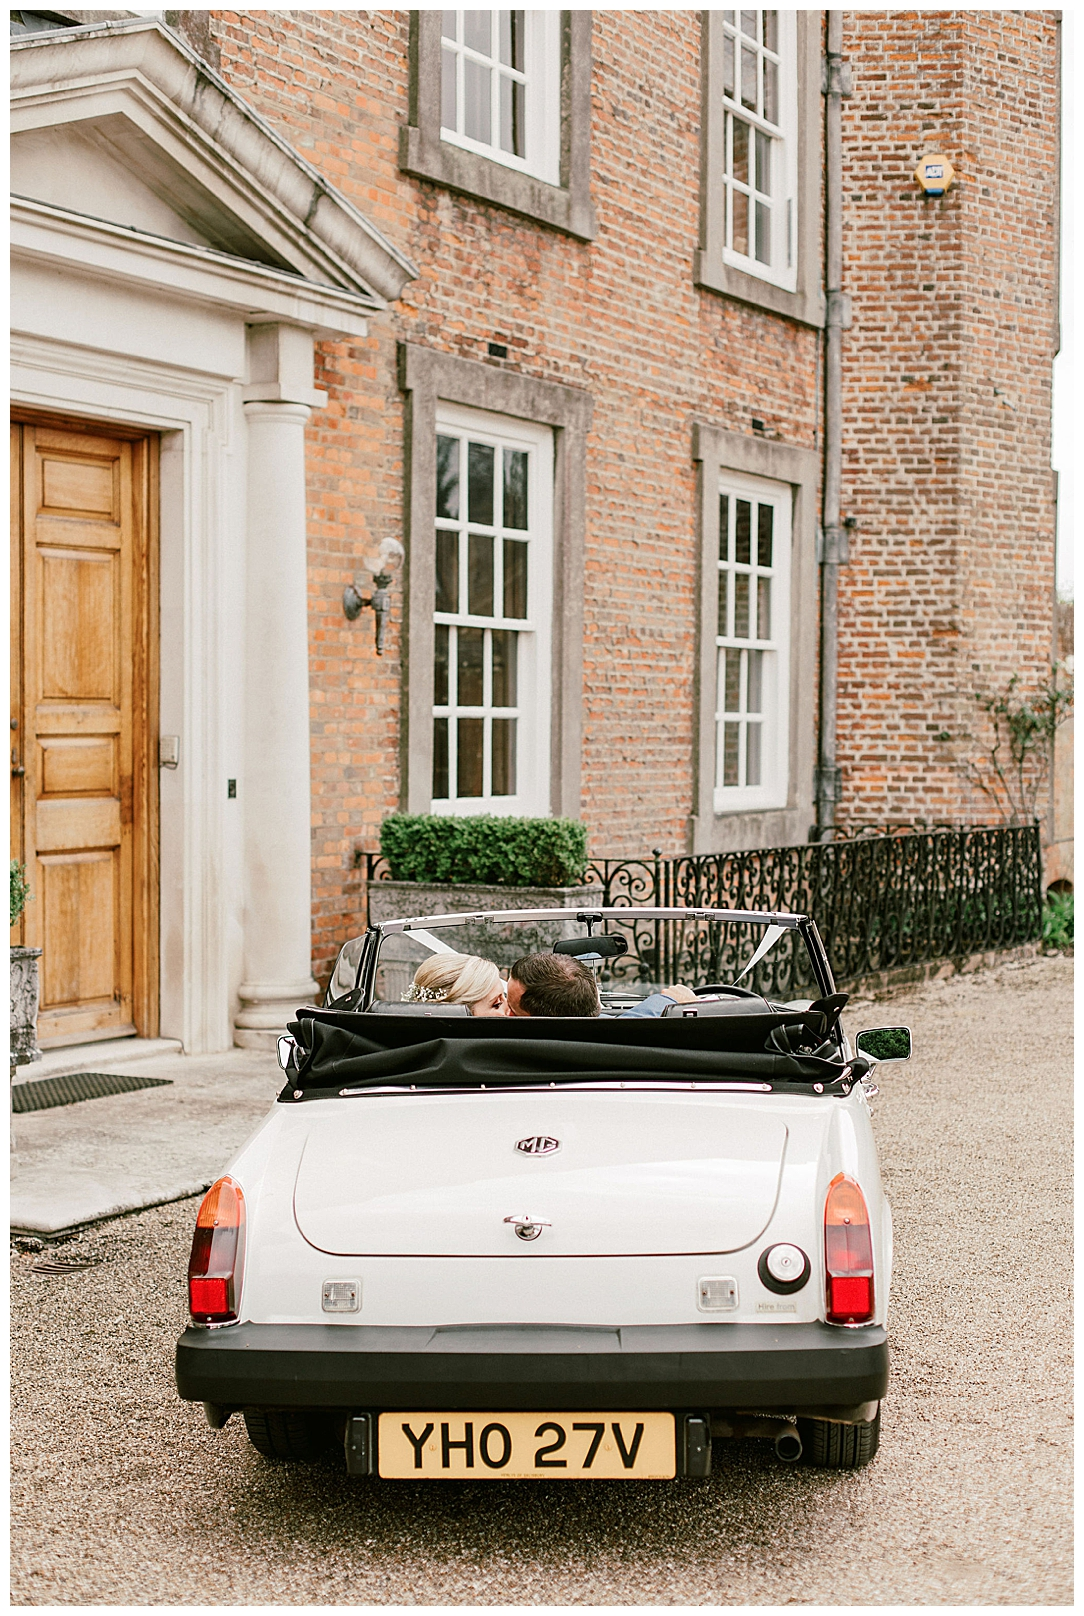 Vintage Car - St Clere Estate - Kent England UK Garden Wedding